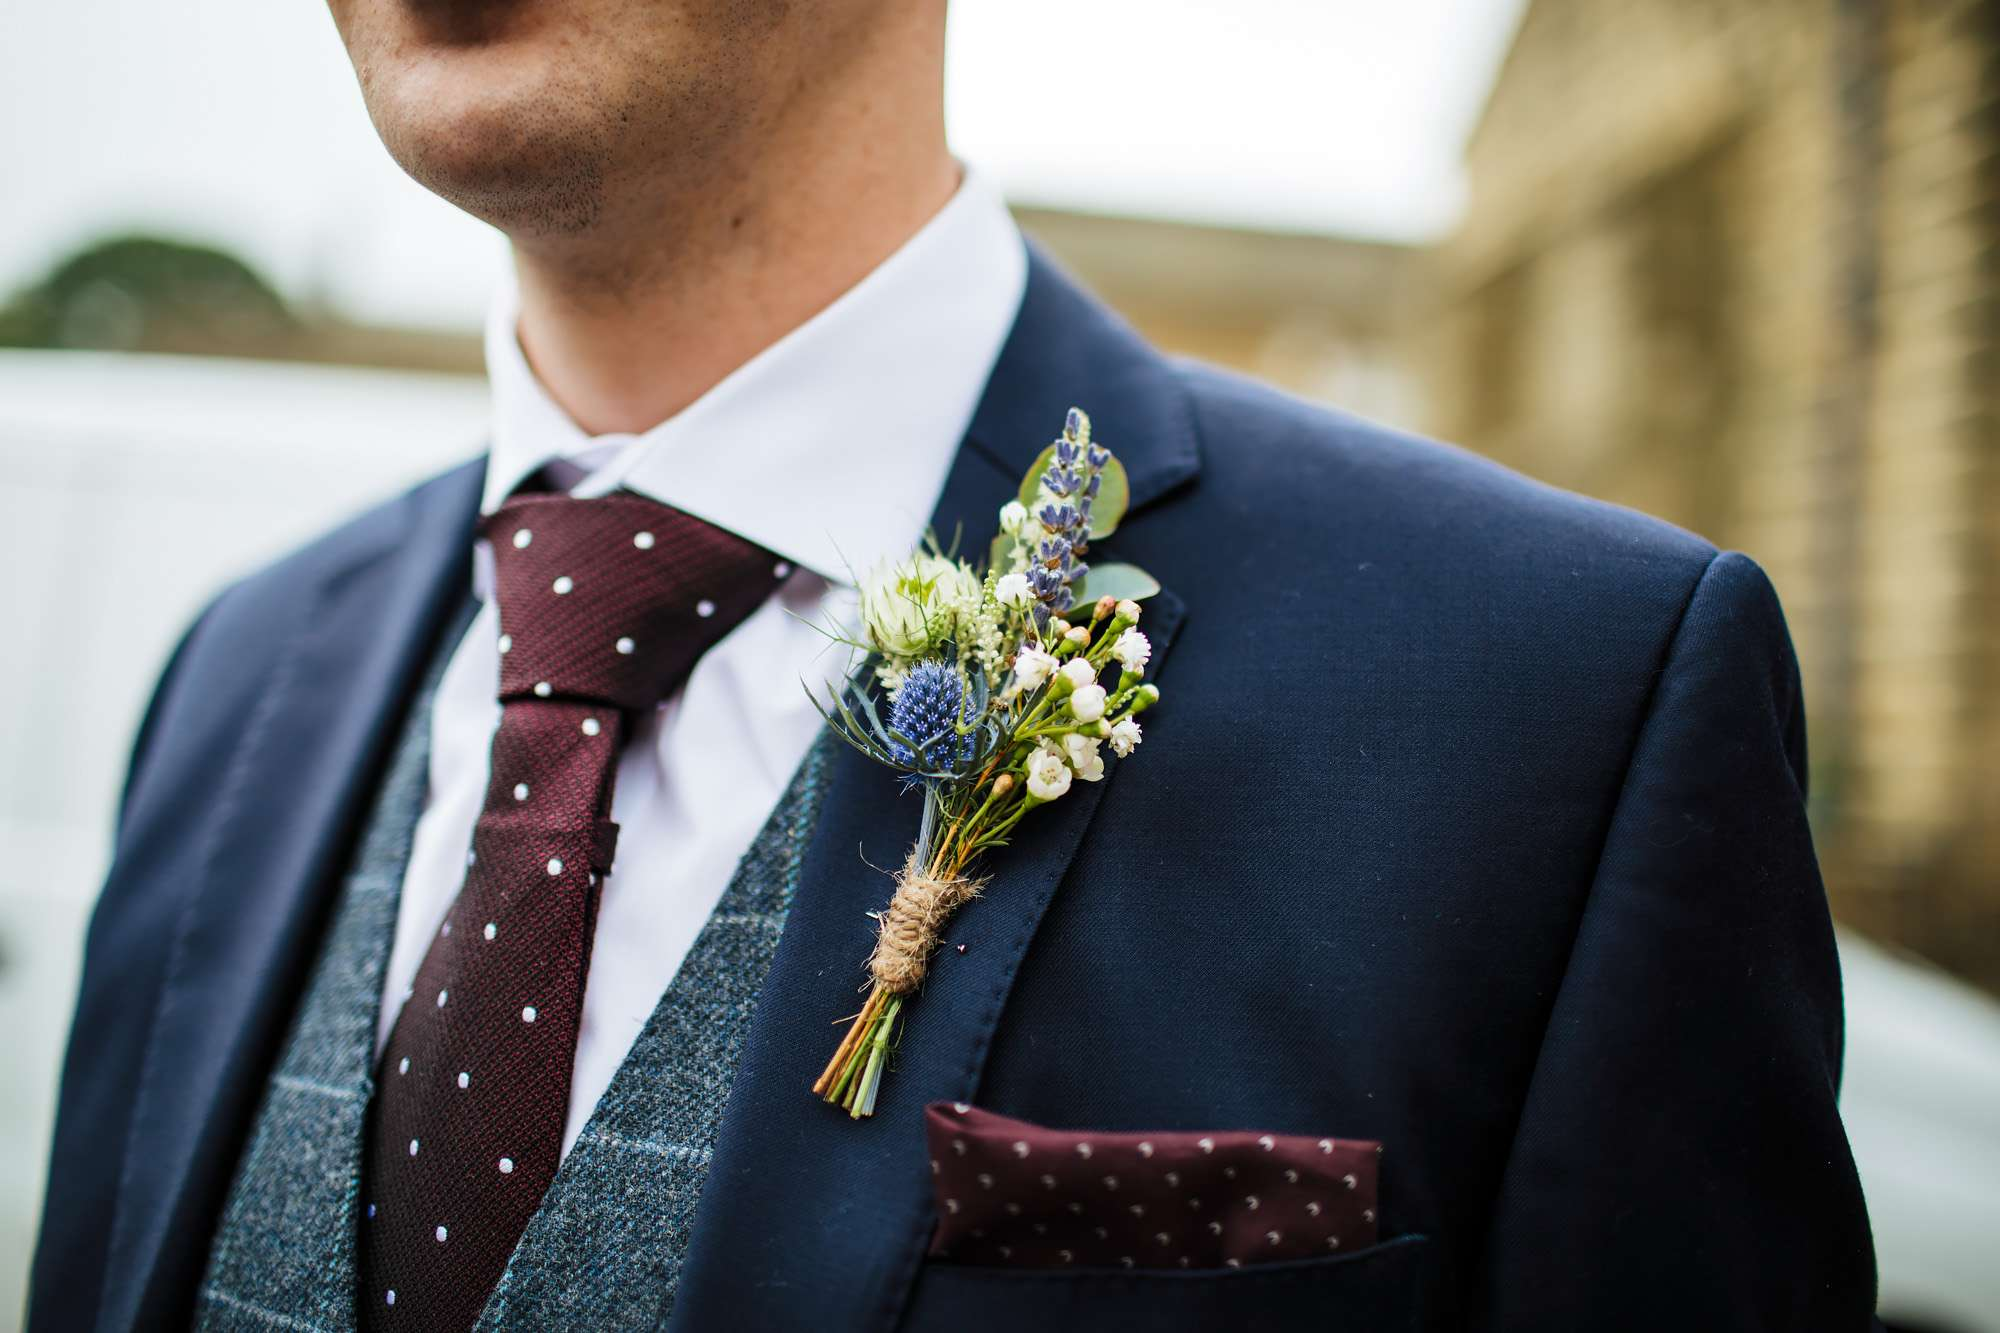 Grooms buttonhole with purple flowers